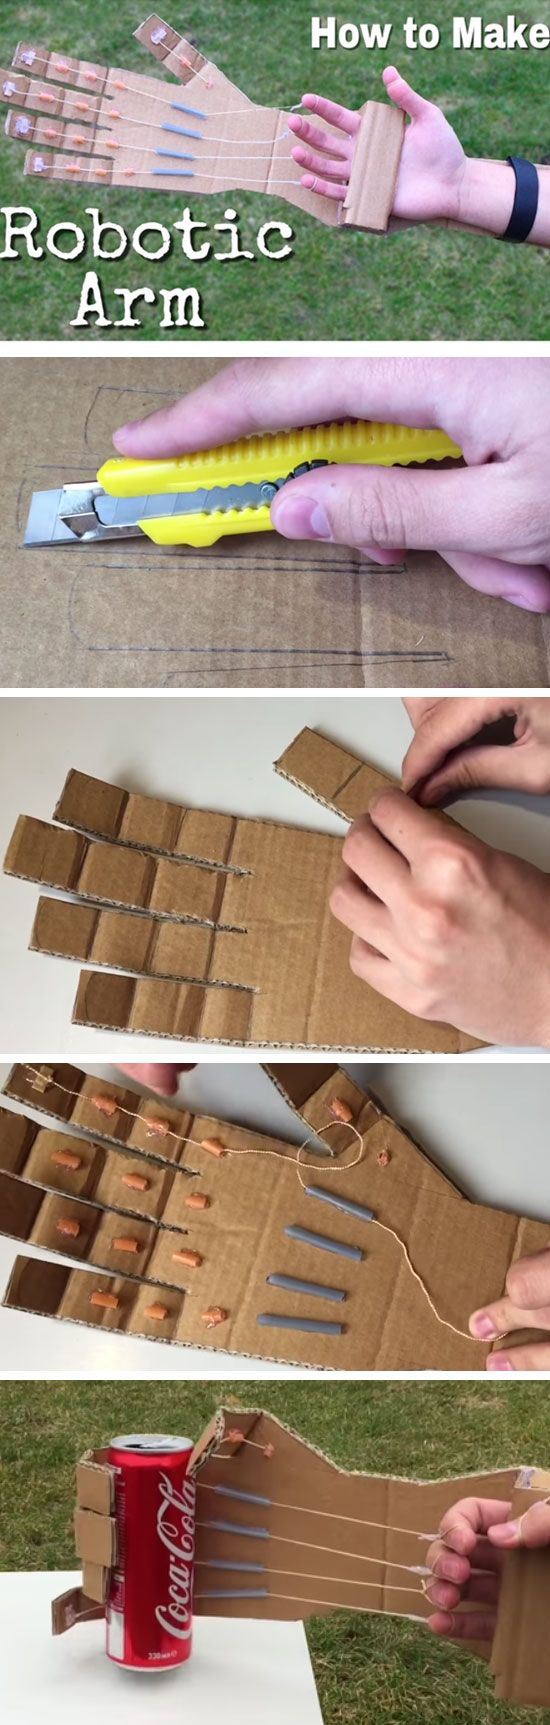 25+ Best DIY Christmas Gifts for Kids 2018 | Kreativ | Pinterest ...